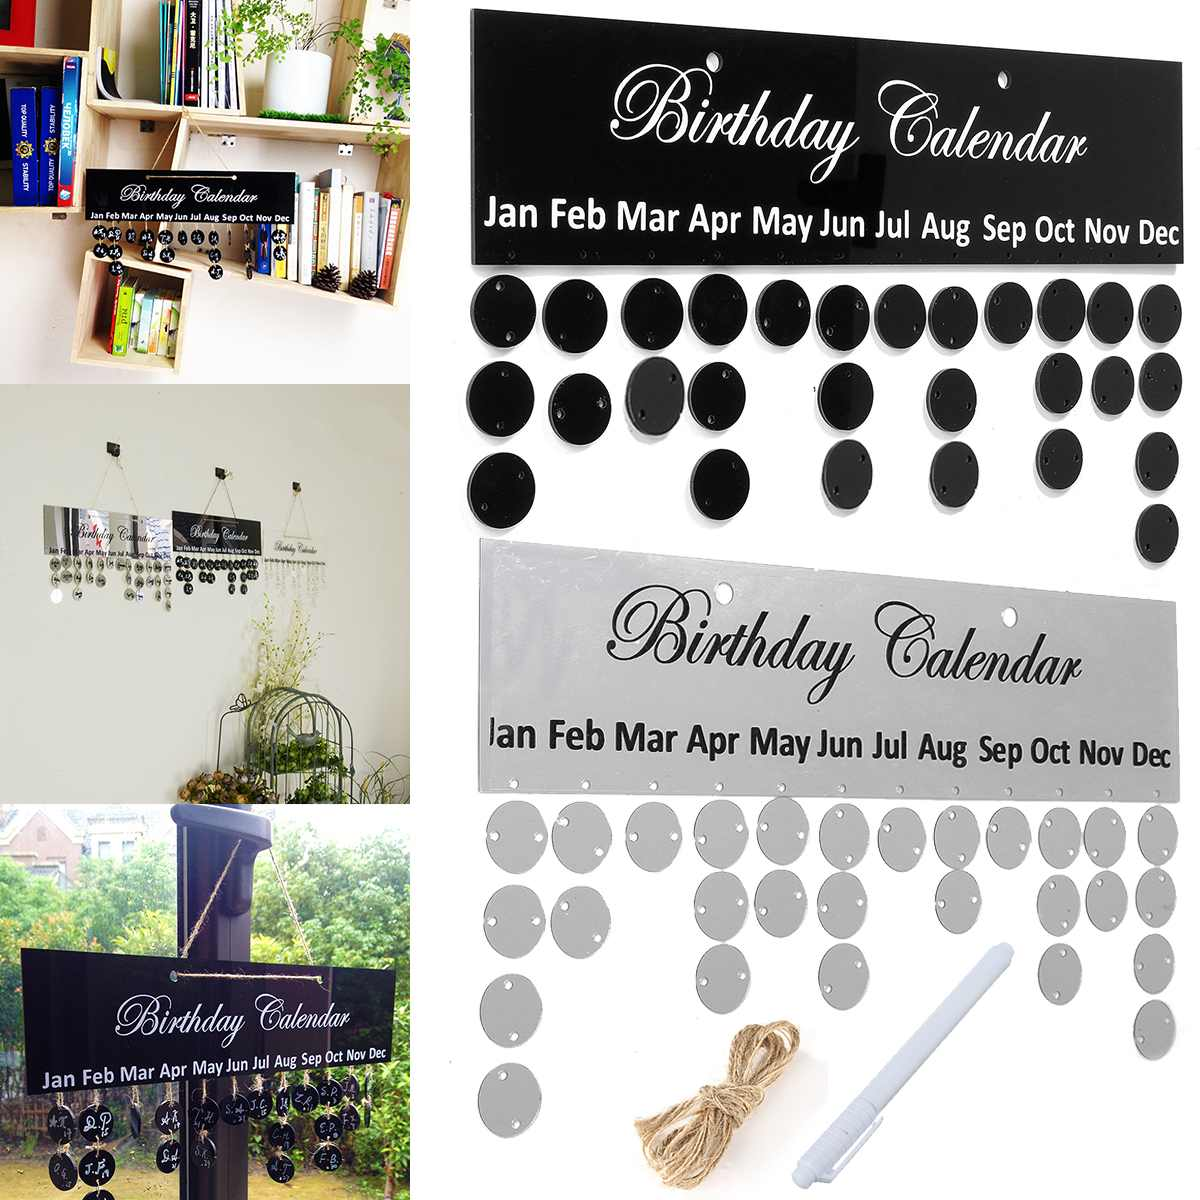 Kicute 1pc Silver Black Birthday Calendar Board DIY Family Birthday Calendar Sign Special Dates Planner Board Hanging Decor Gift